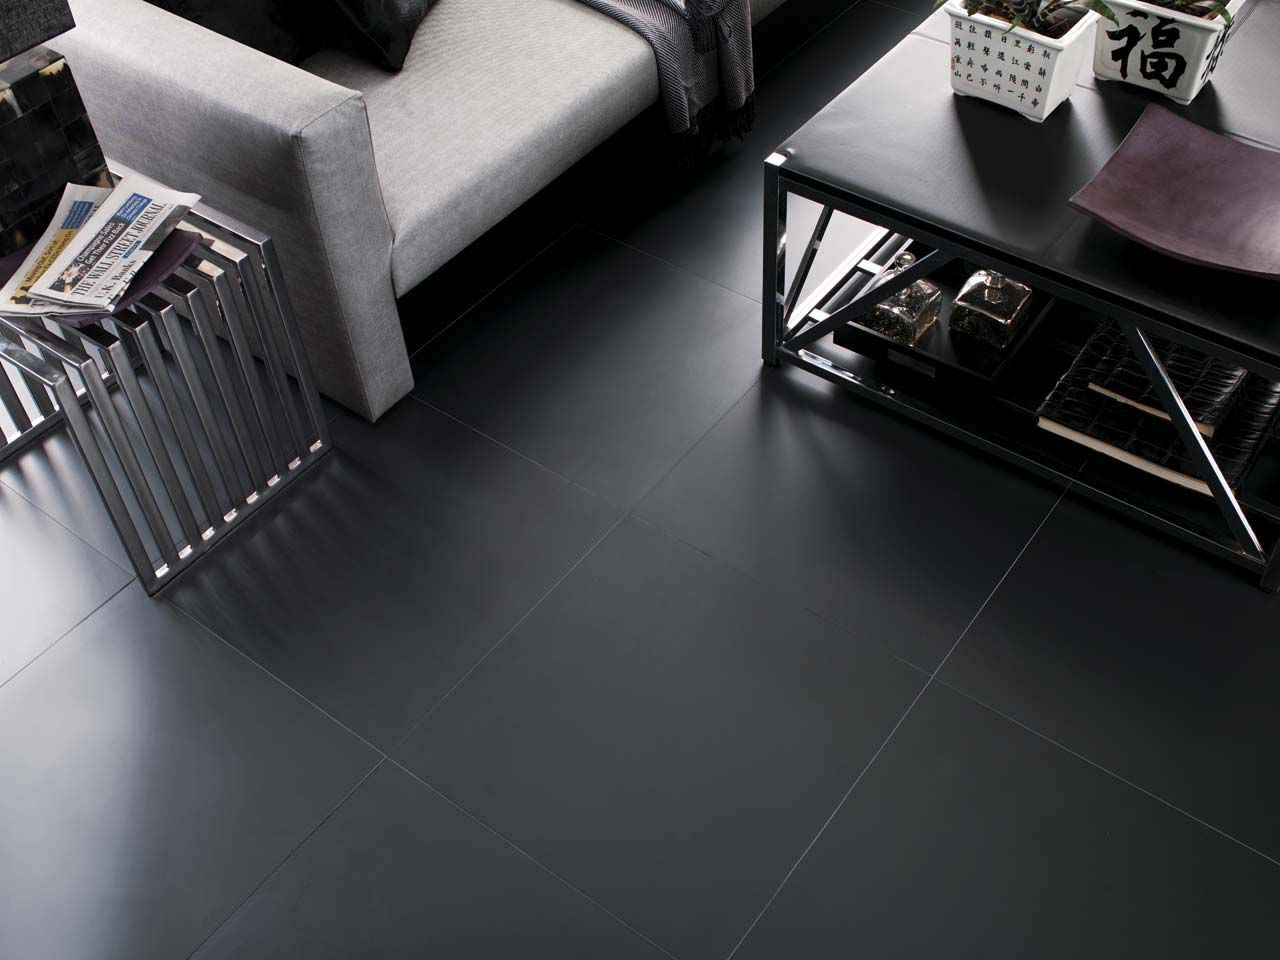 Matt Black Tiles  78 images about Our Products PORCELAIN on Pinterest  Ceramics Ceramica and Steam boats  78 images. Matt Black Floor Tiles